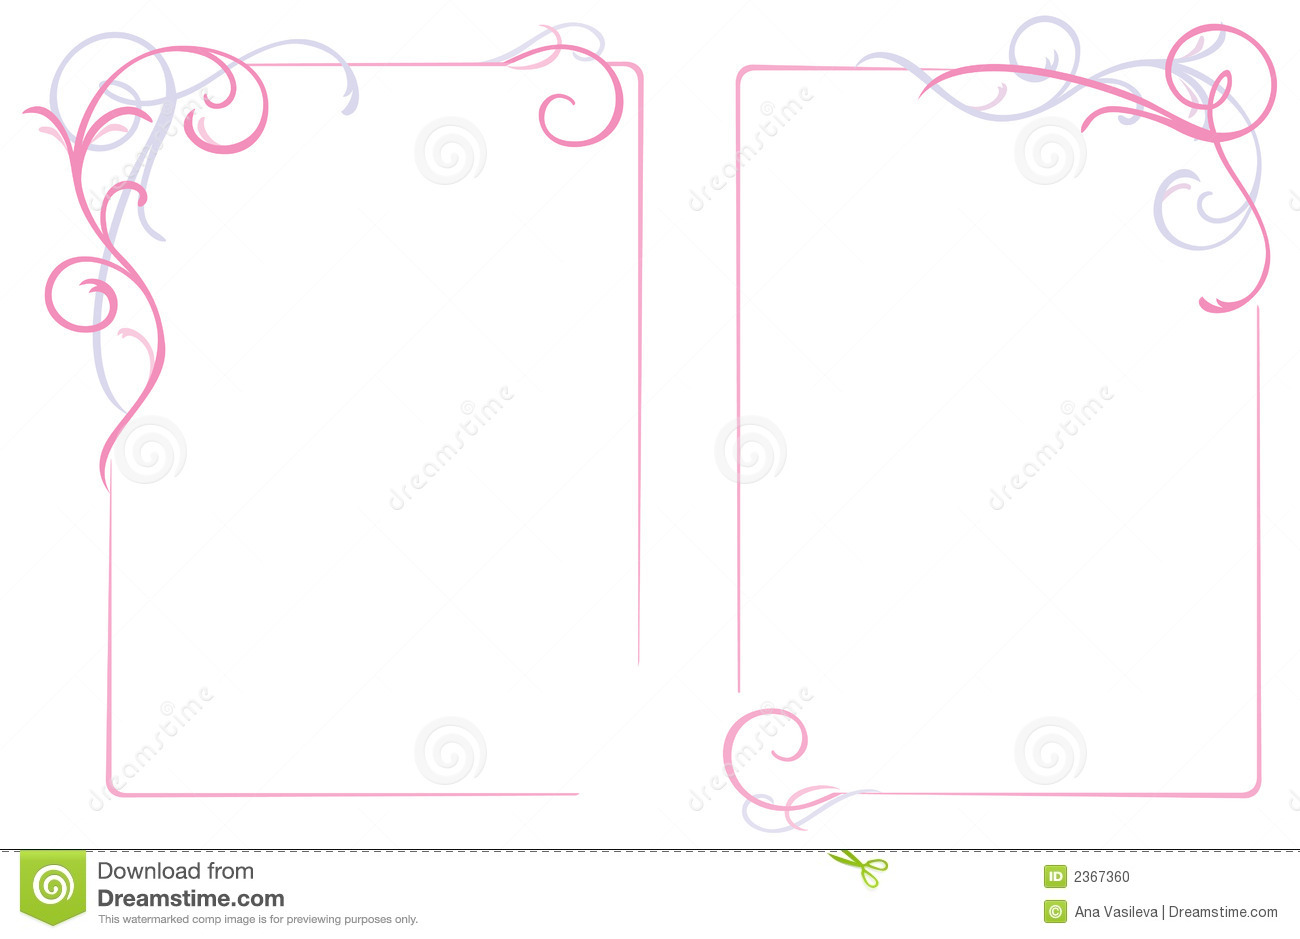 Frame abstrato do ornamento floral